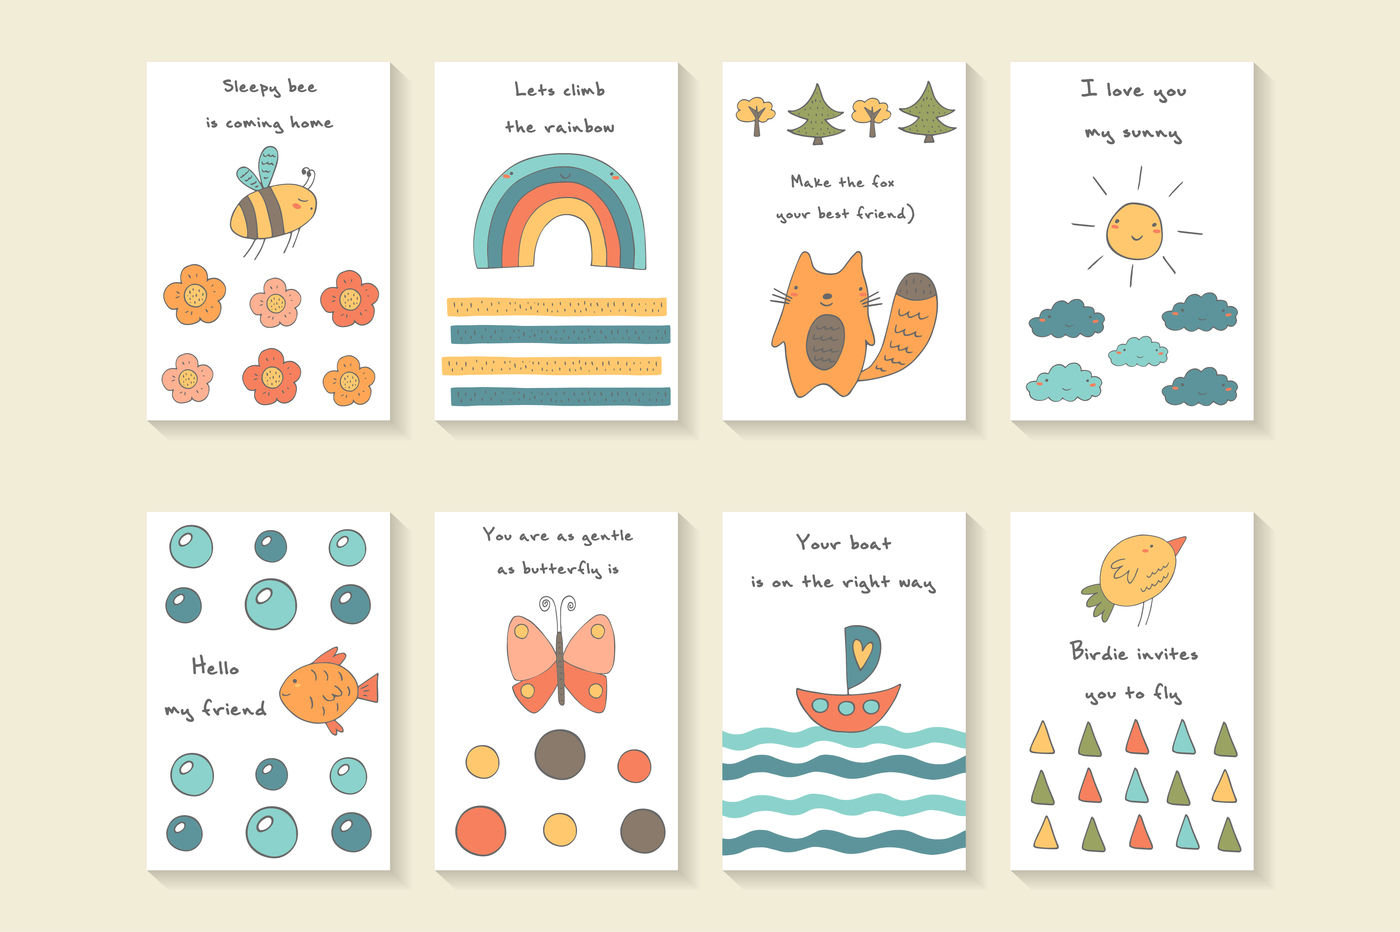 Cute Postcards By Veresk | TheHungryJPEG.com